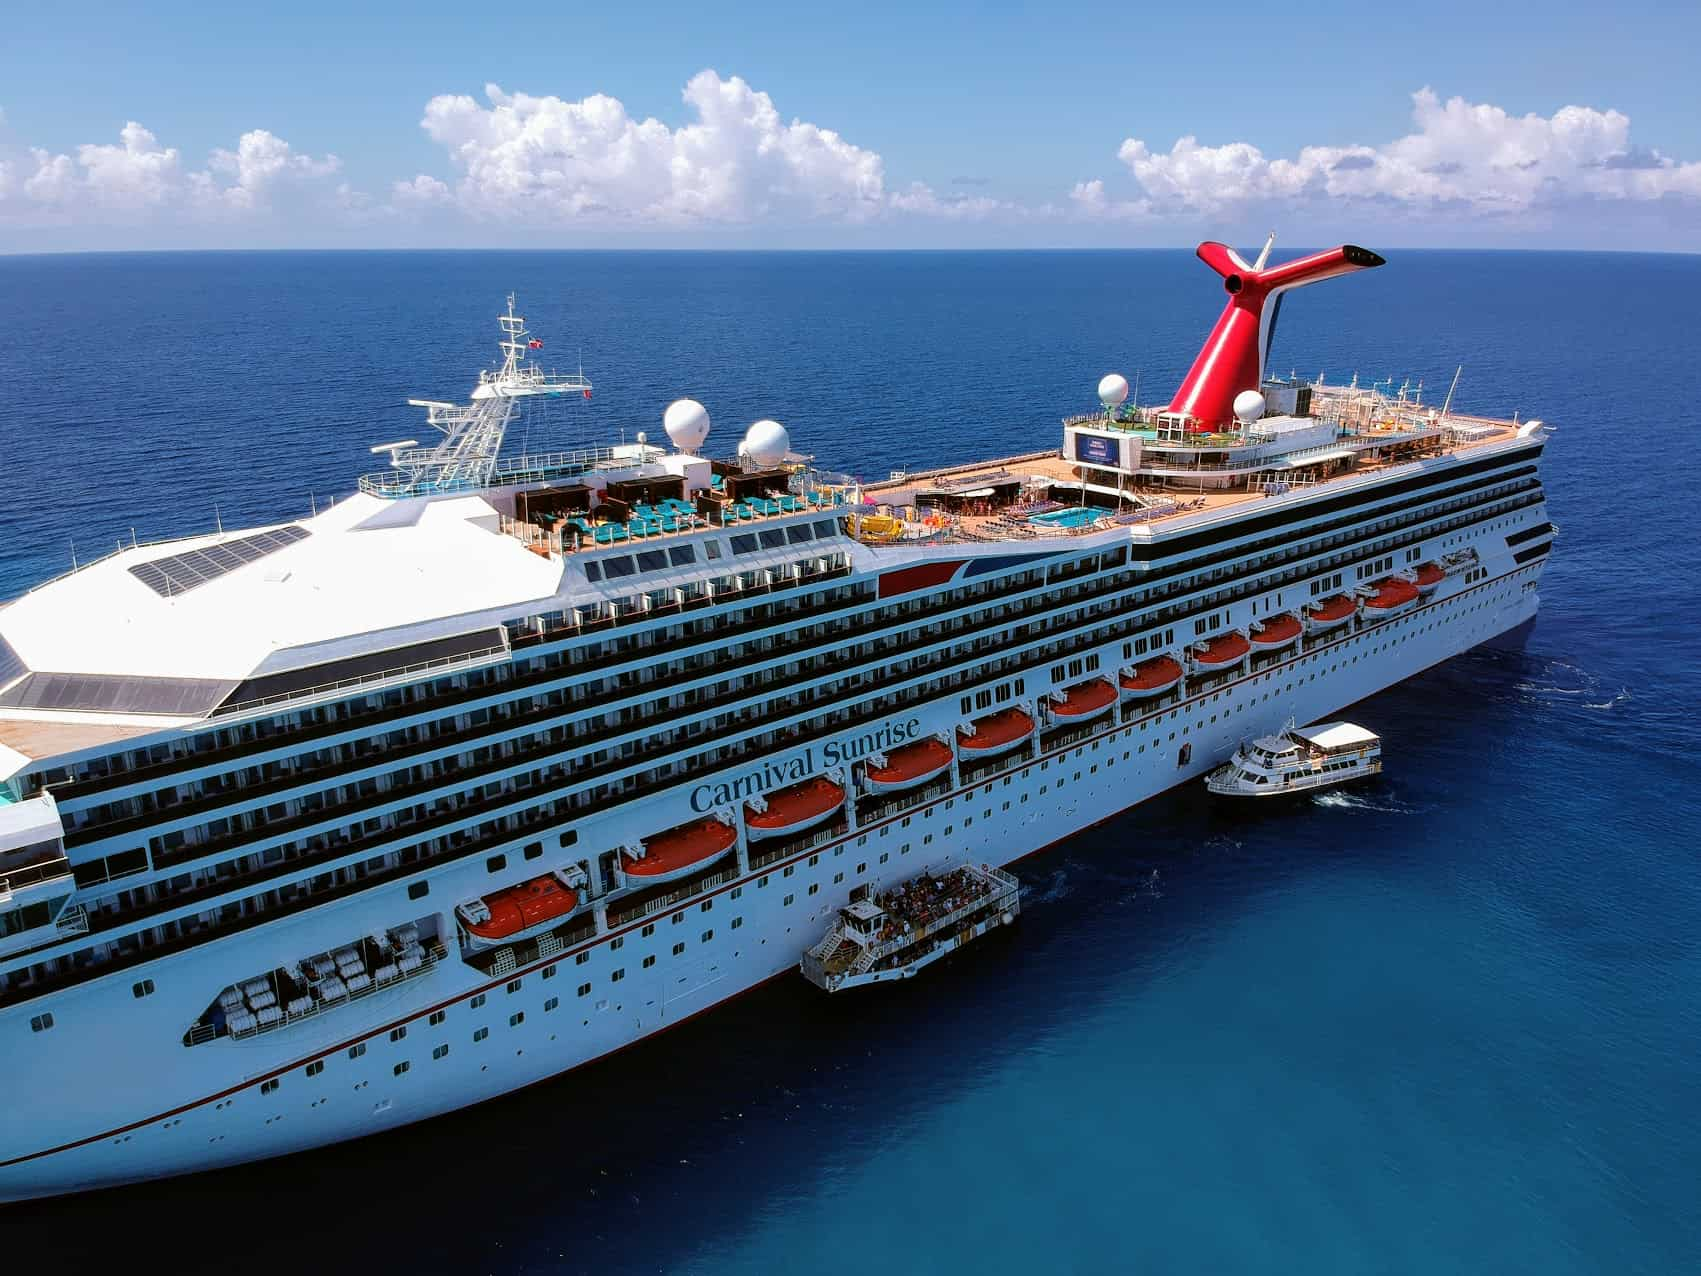 21 Changes Made to Carnival Sunrise [PHOTOS]